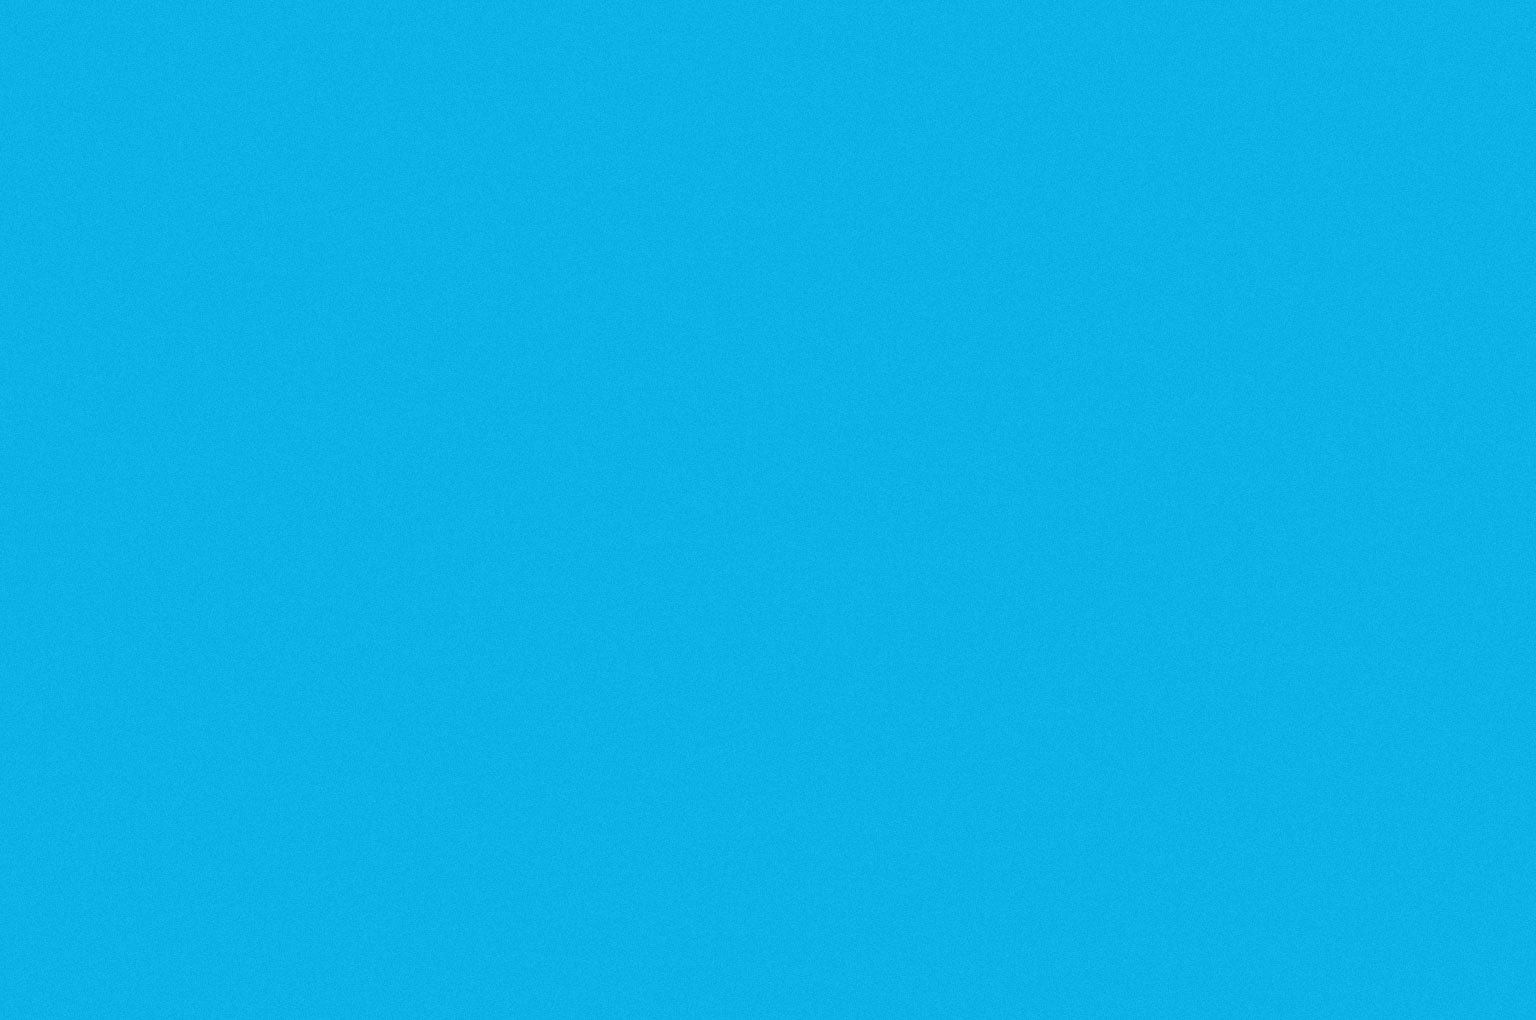 Blue Plain Wallpaper - WallpaperSafari